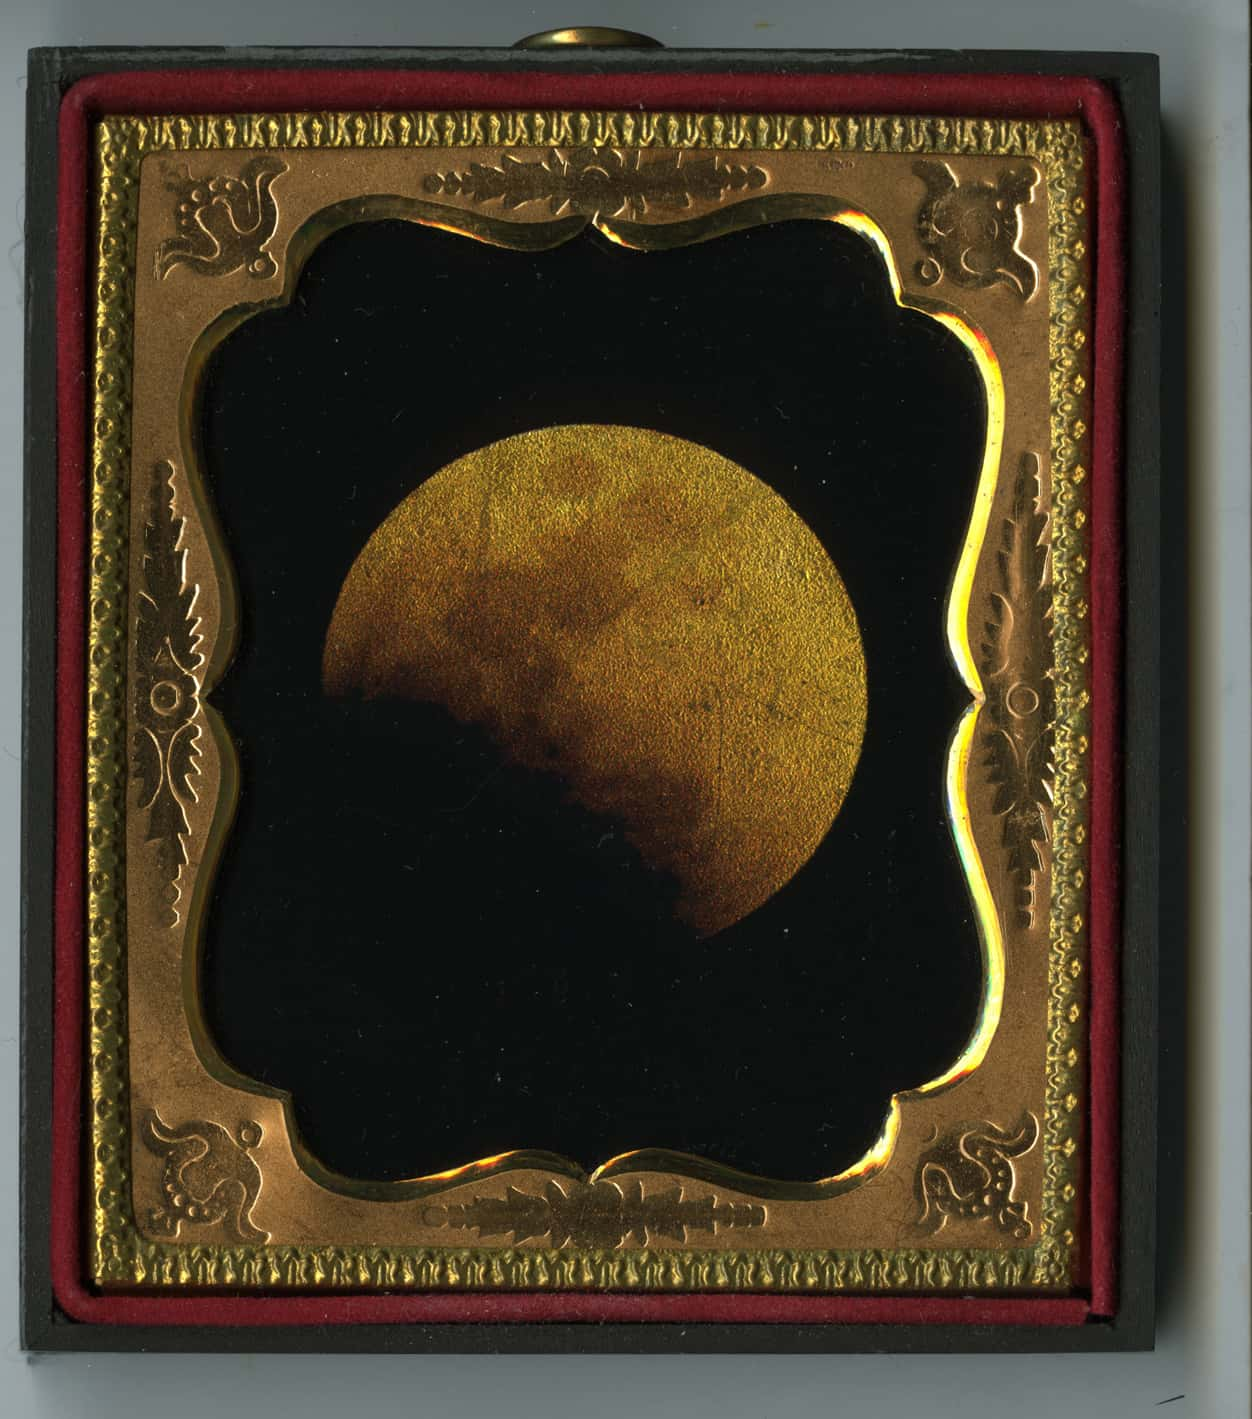 Lunar Eclipse, Feb 2008, daguerreotype framed, Kate Breakey, Catherine Couturier Gallery